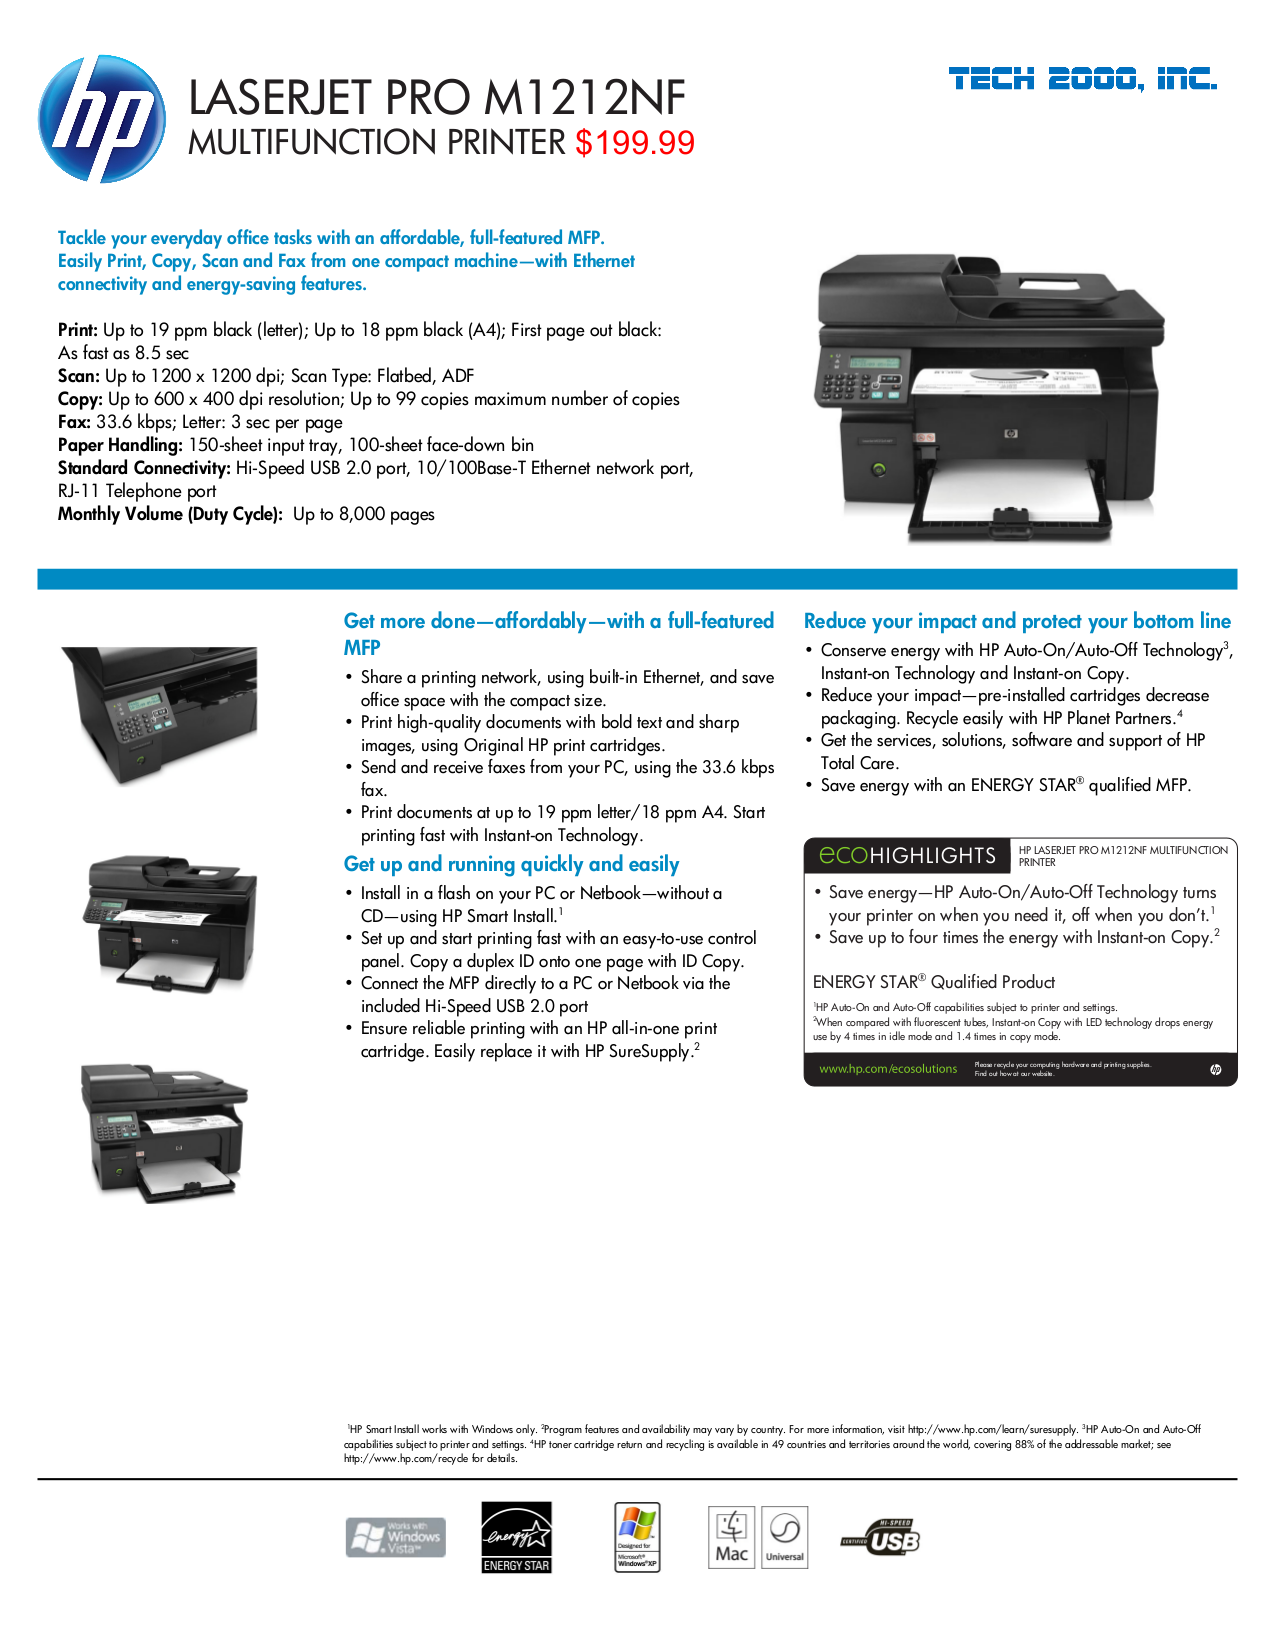 hp laserjet 5si family printers service manual